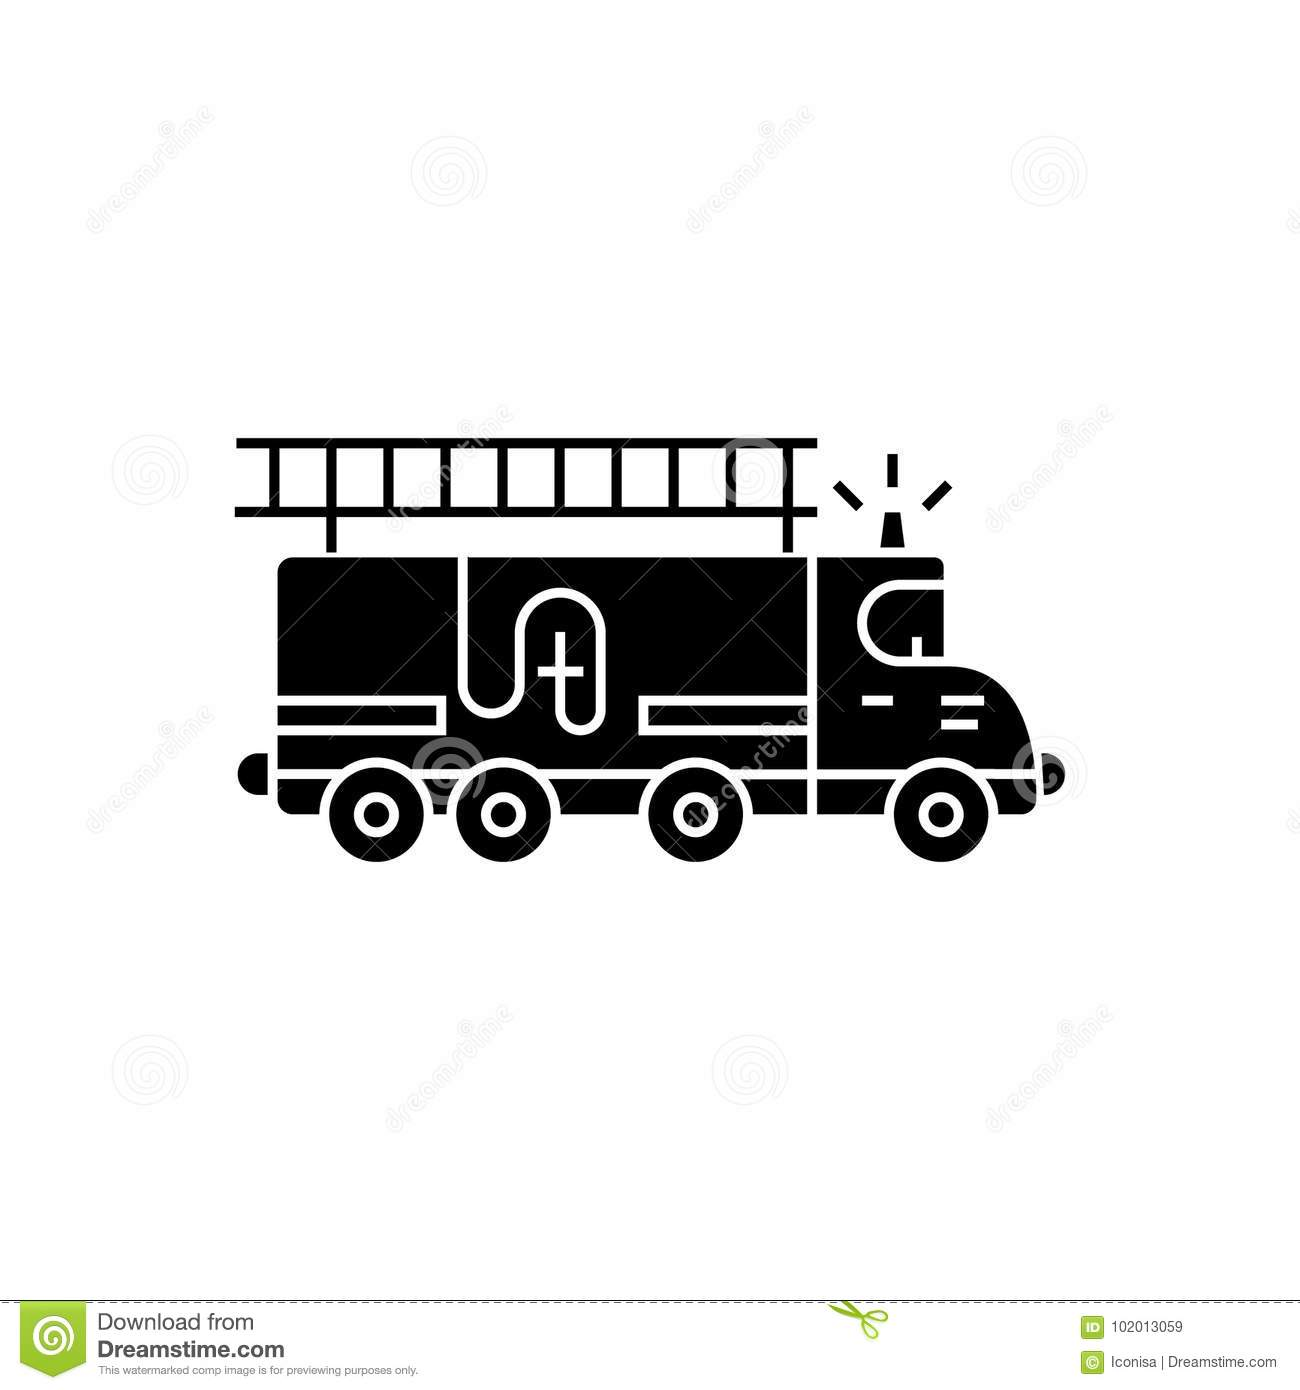 Fire engine - car icon, vector illustration, black sign on isolated background